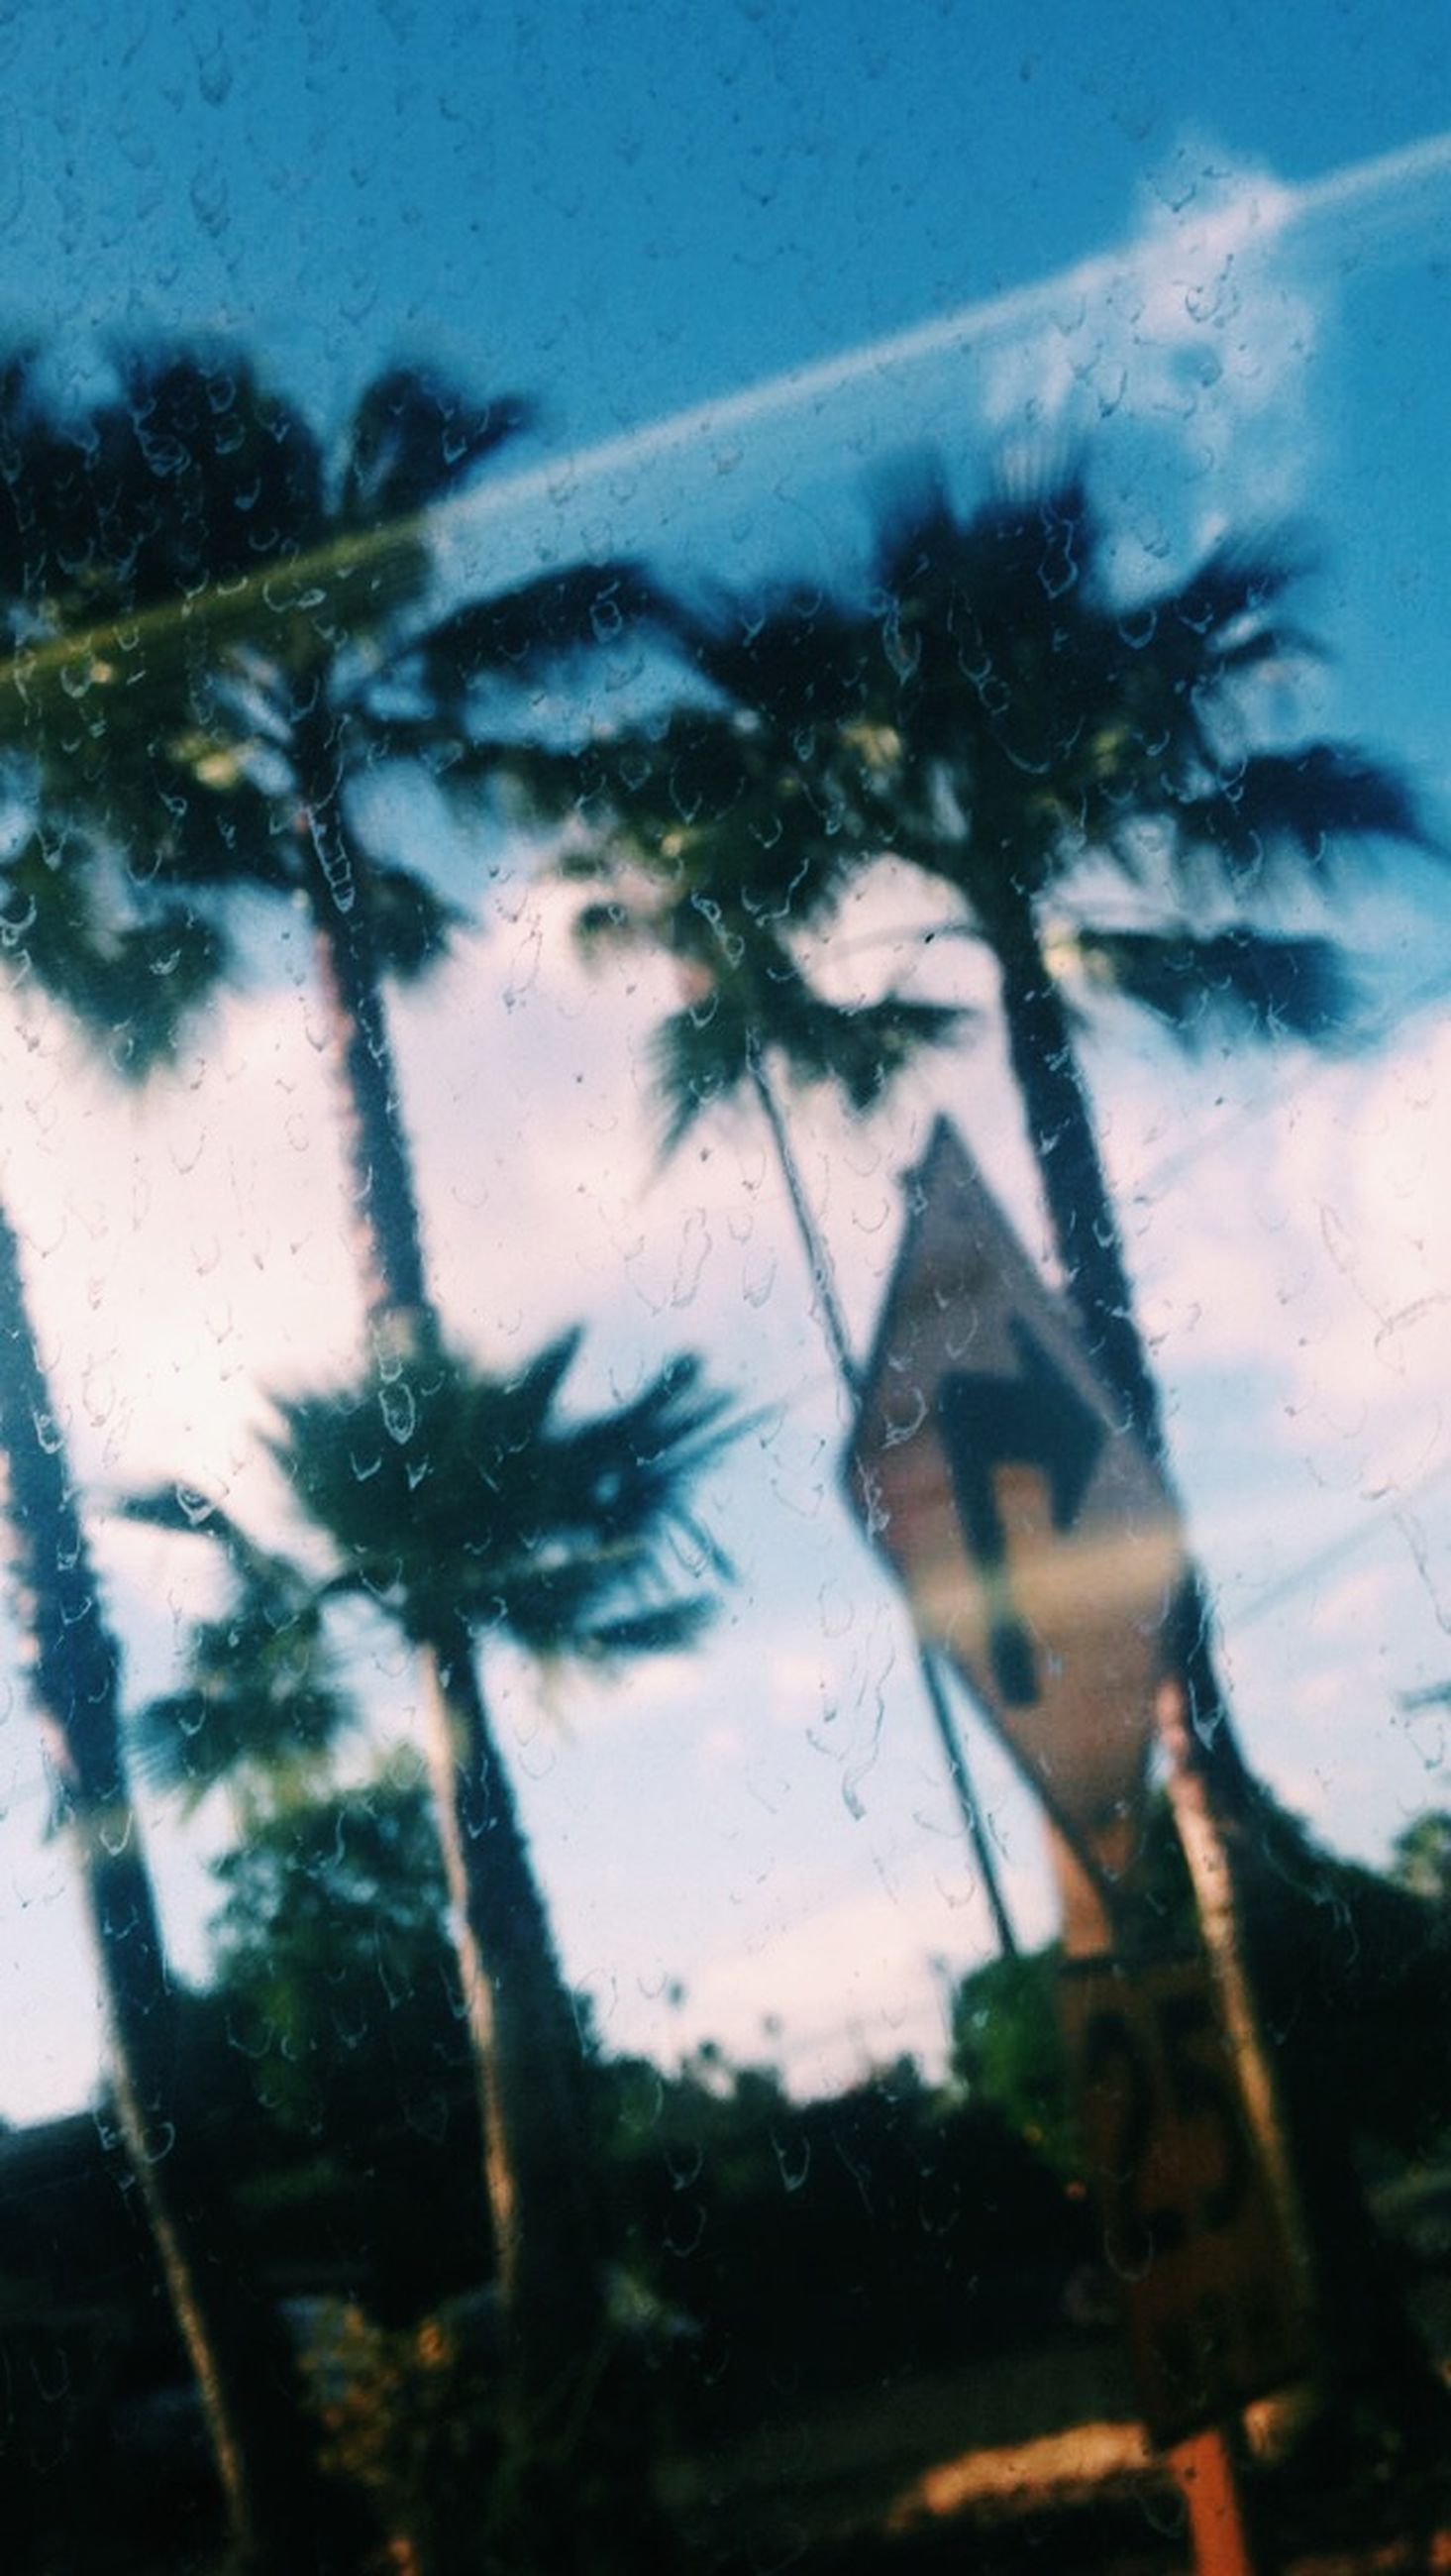 tree, sky, silhouette, window, glass - material, low angle view, palm tree, transparent, transportation, day, rain, dusk, wet, street, car, land vehicle, growth, outdoors, nature, built structure